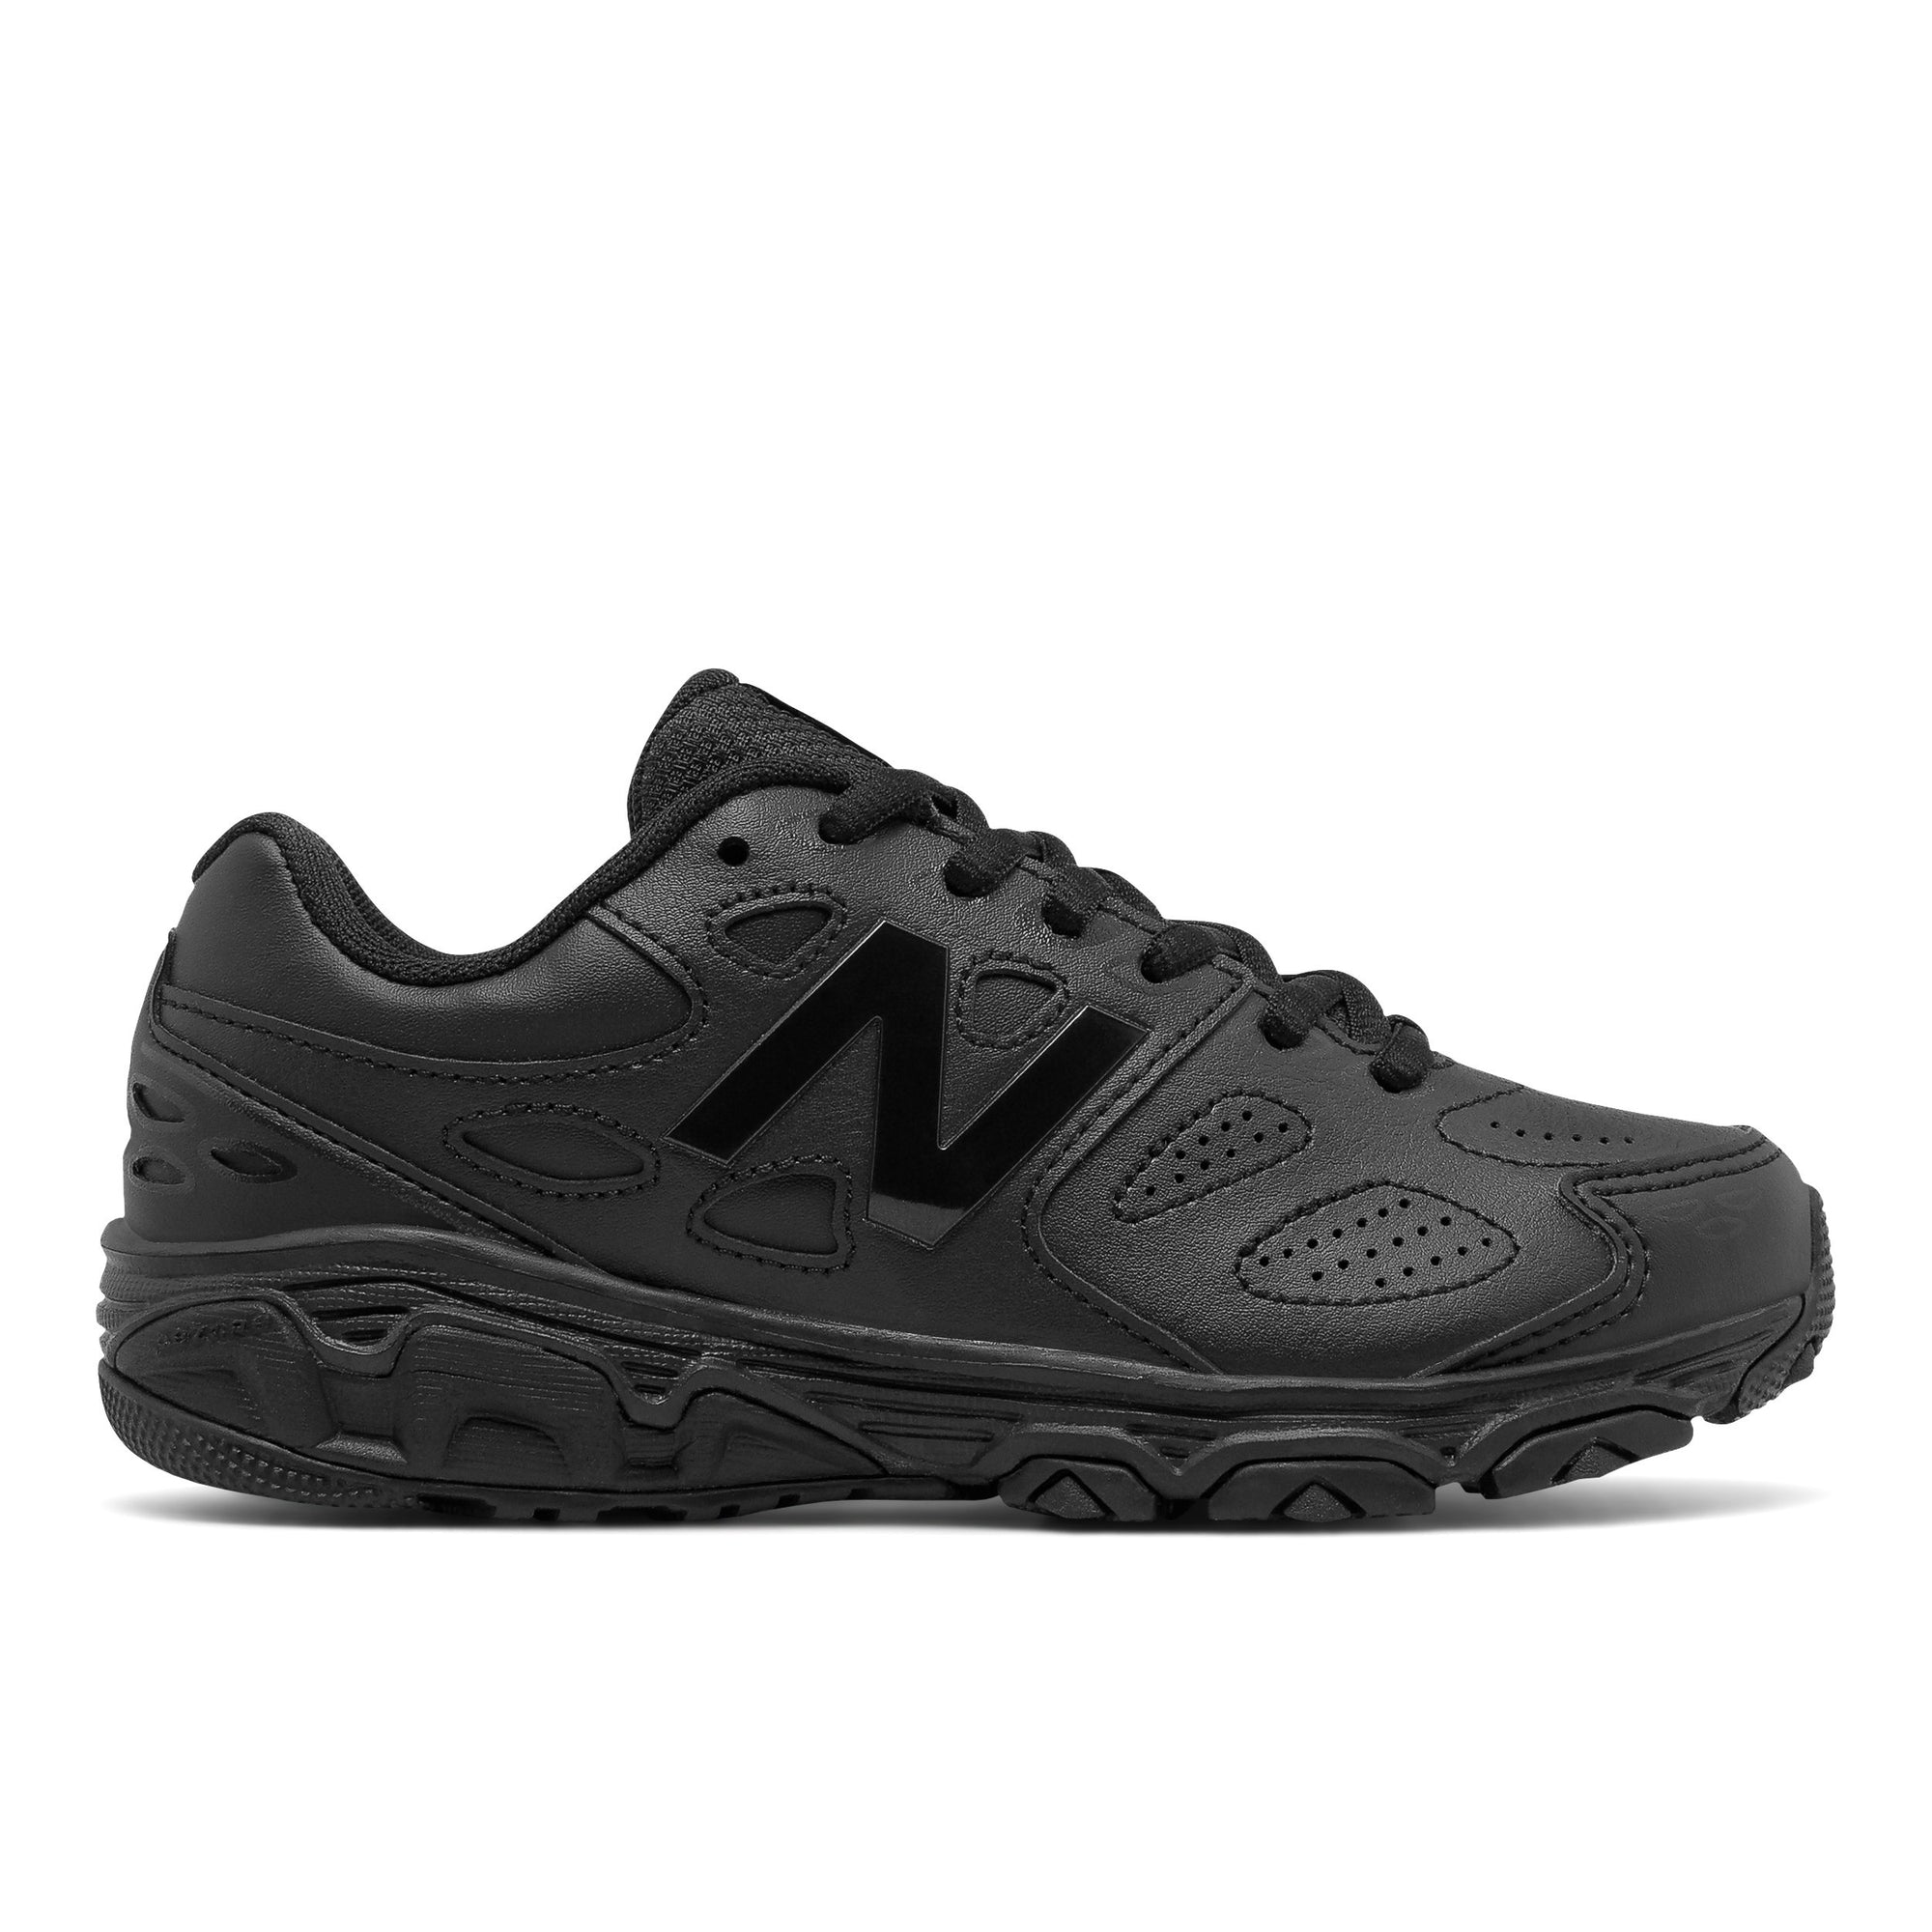 New Balance Kids 680v6 - Triple Black SP-Footwear-Kids New Balance